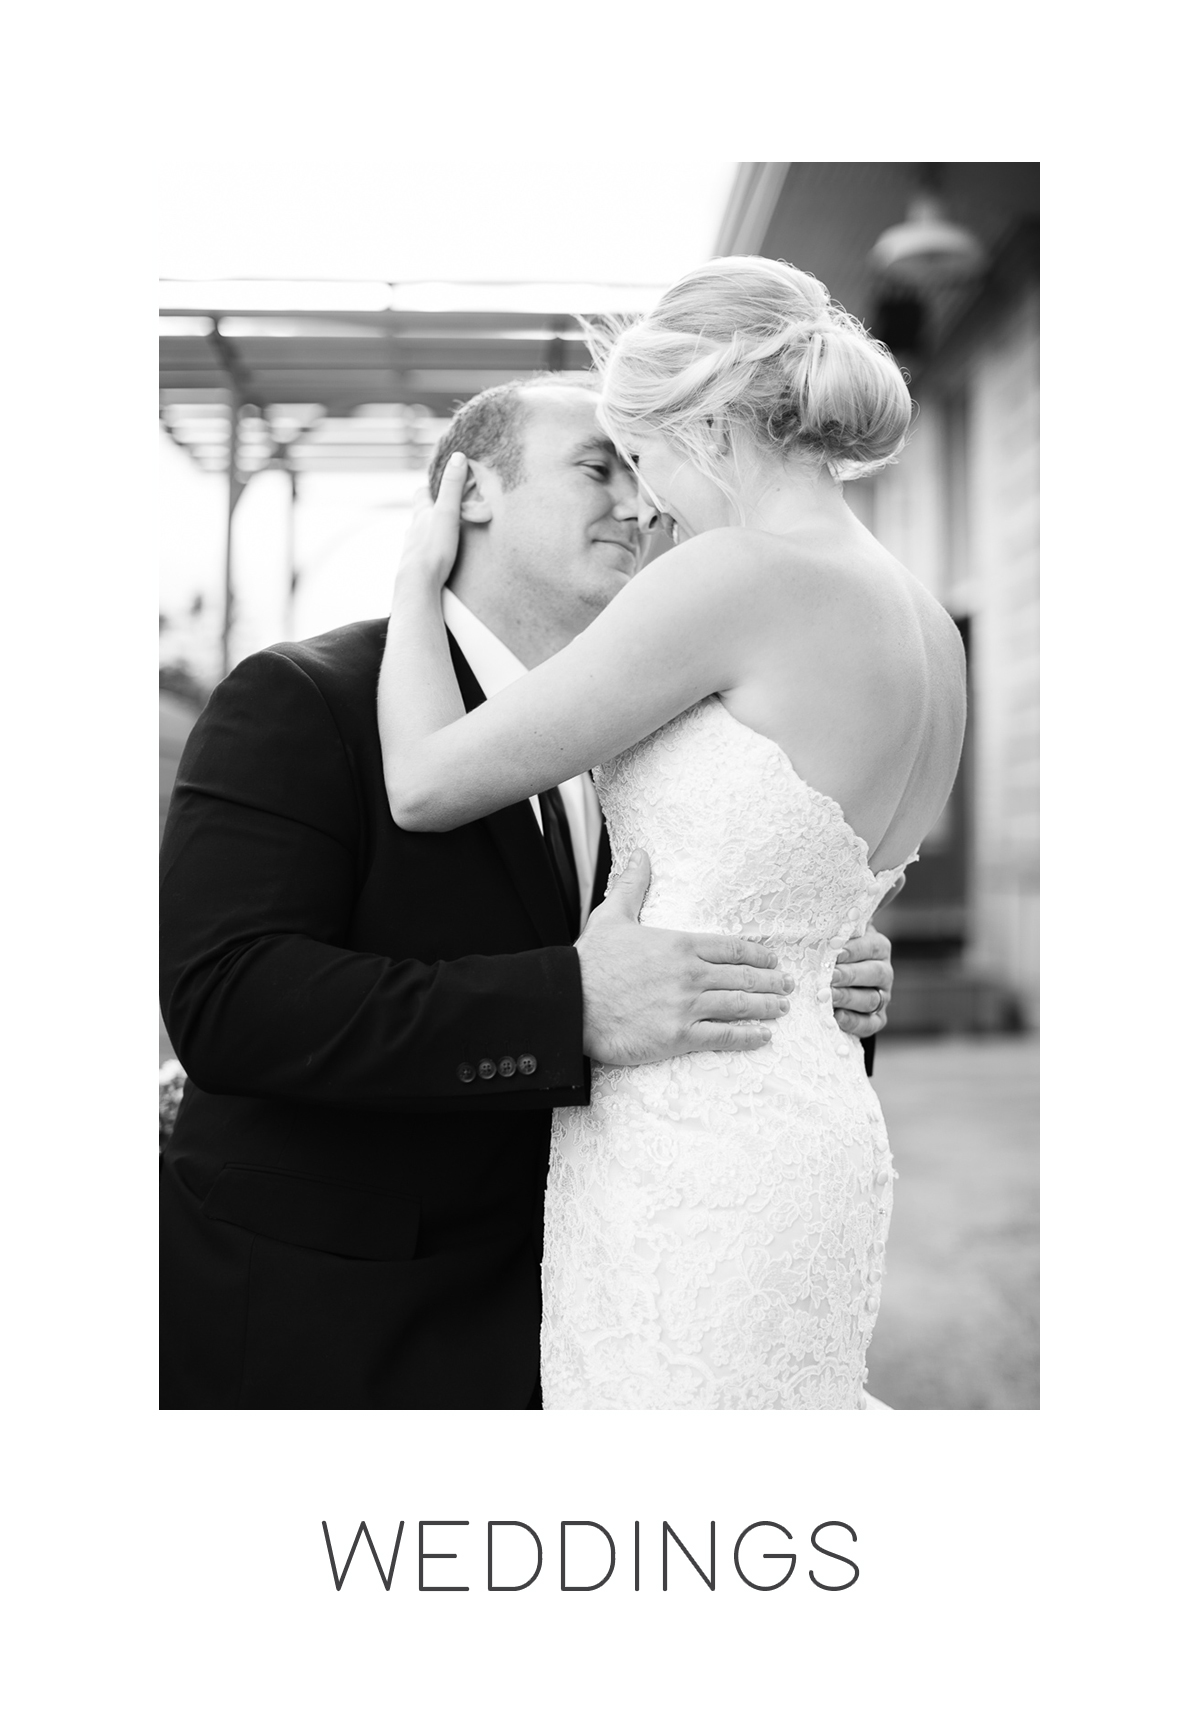 gallerybutton_wedding1.jpg